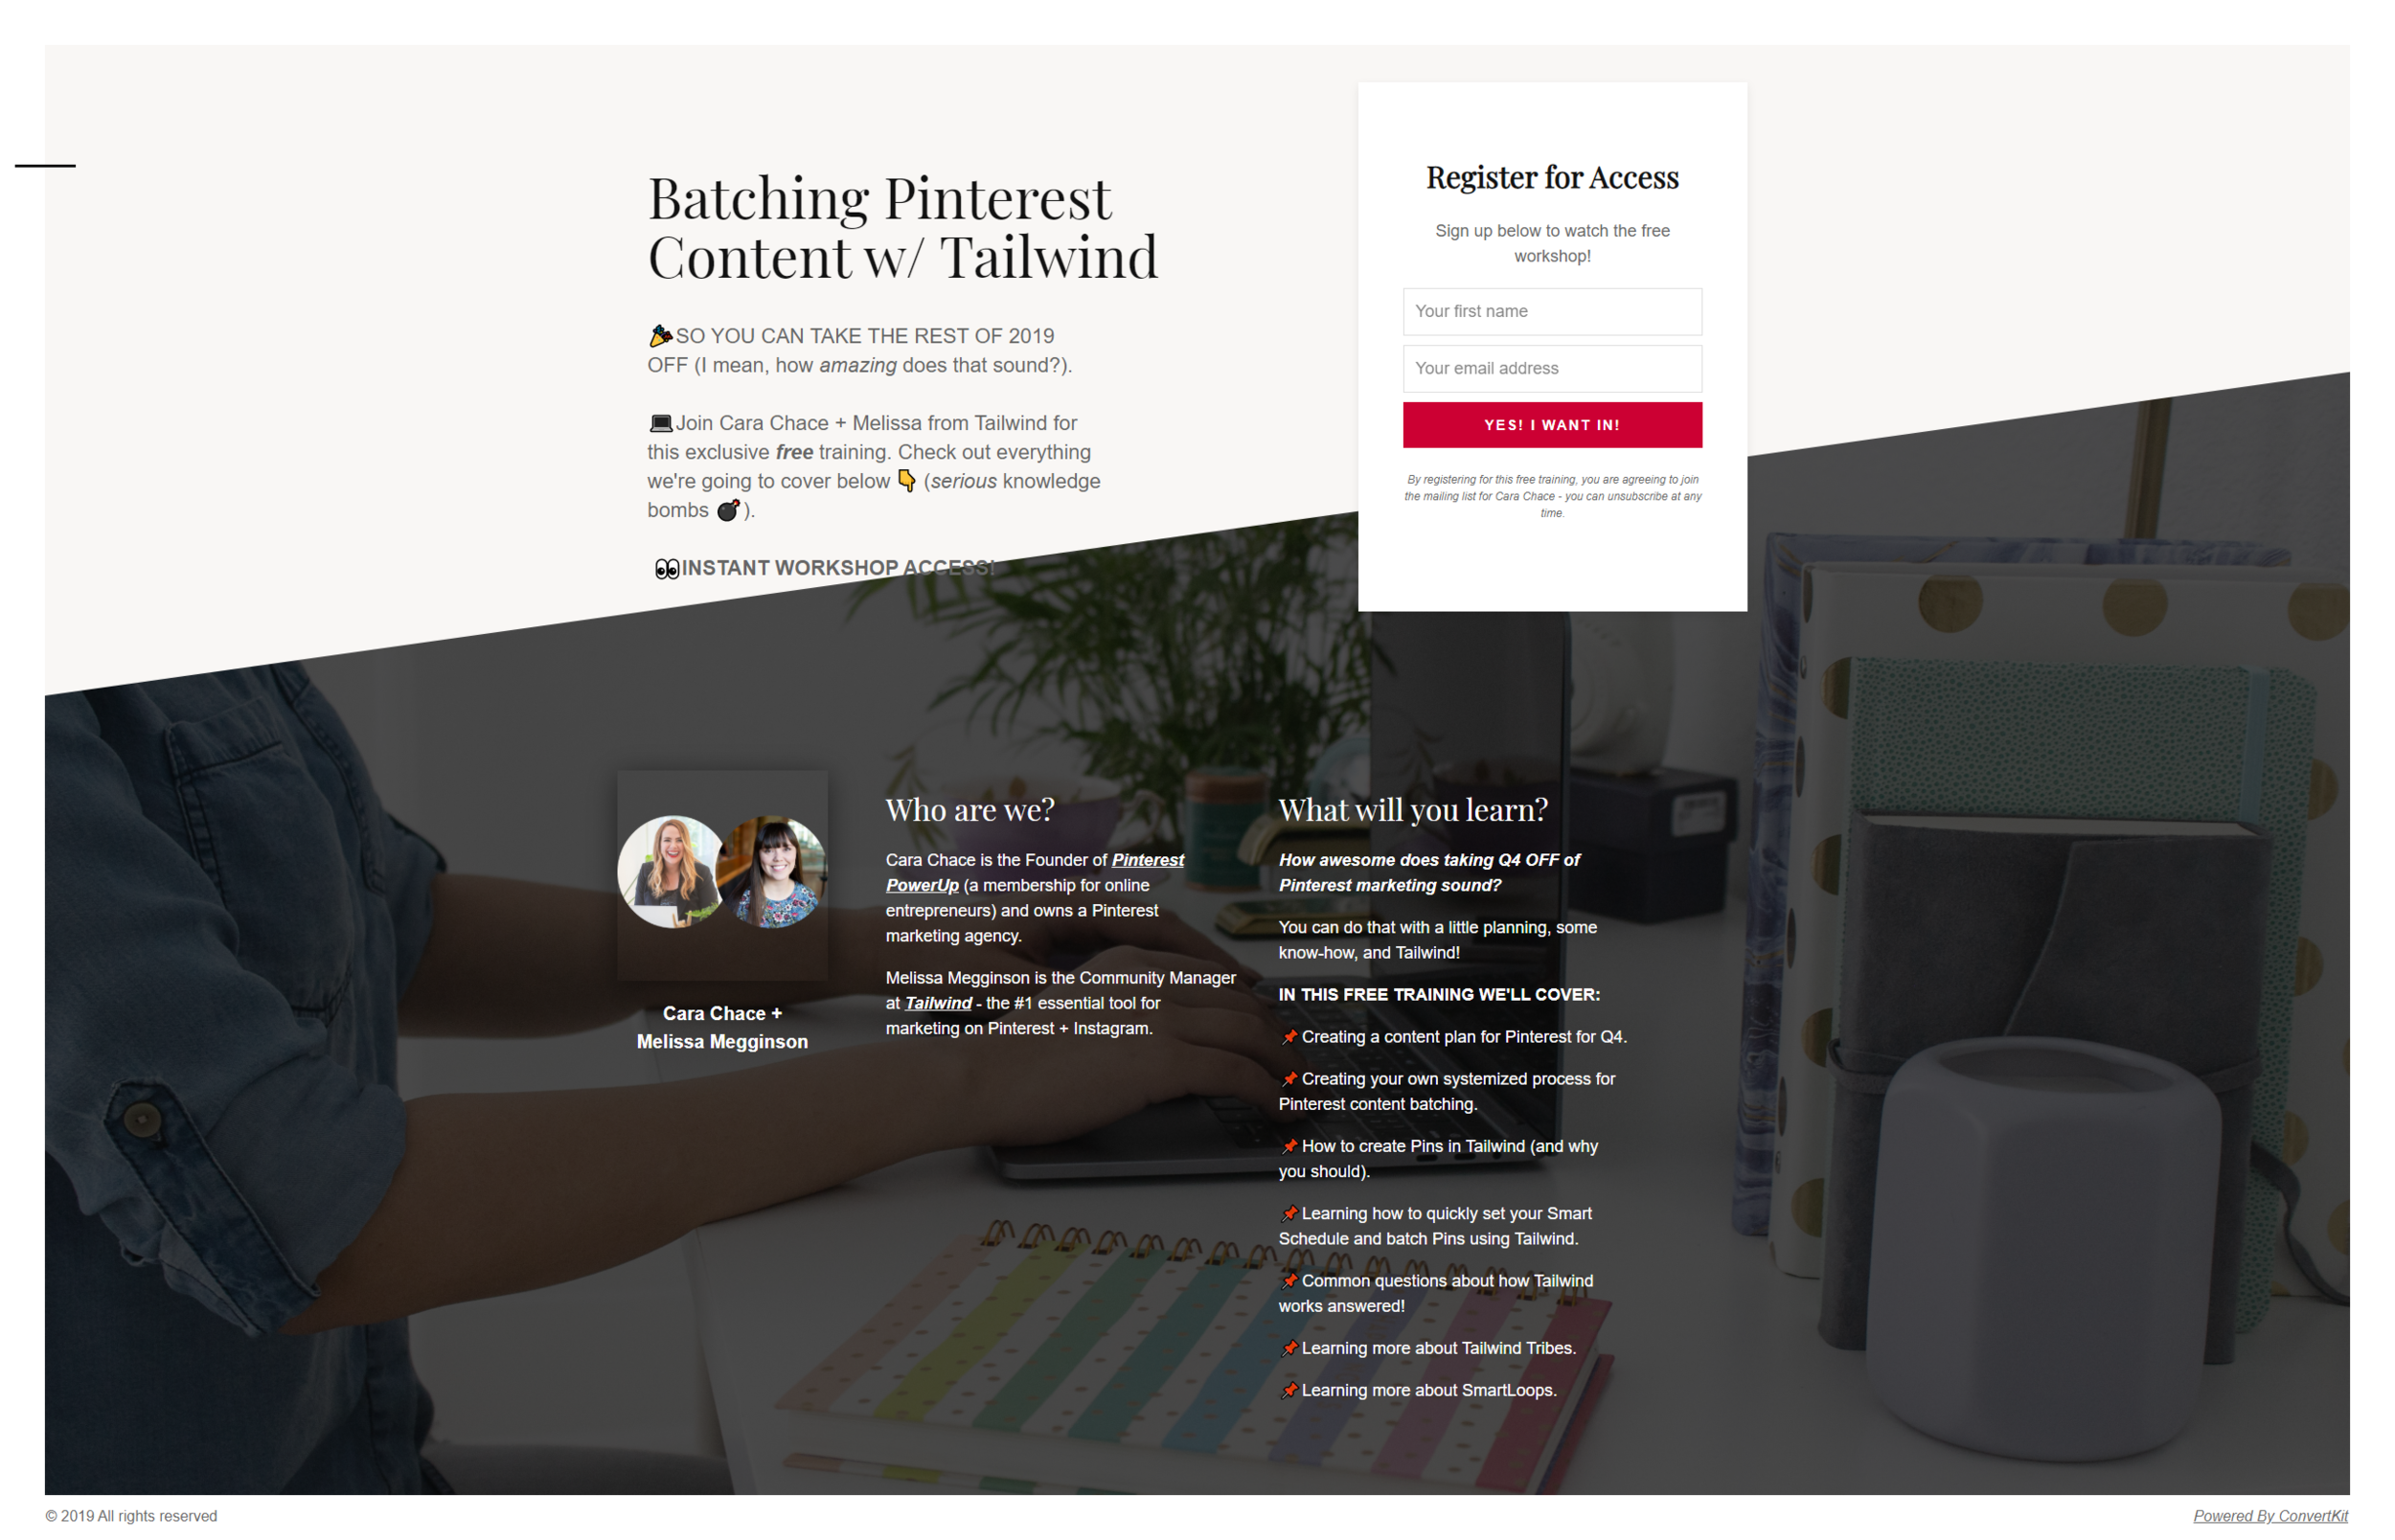 screencapture-pages-convertkit-b130603ee9-7fda1a3591-2019-09-24-15_13_45.png